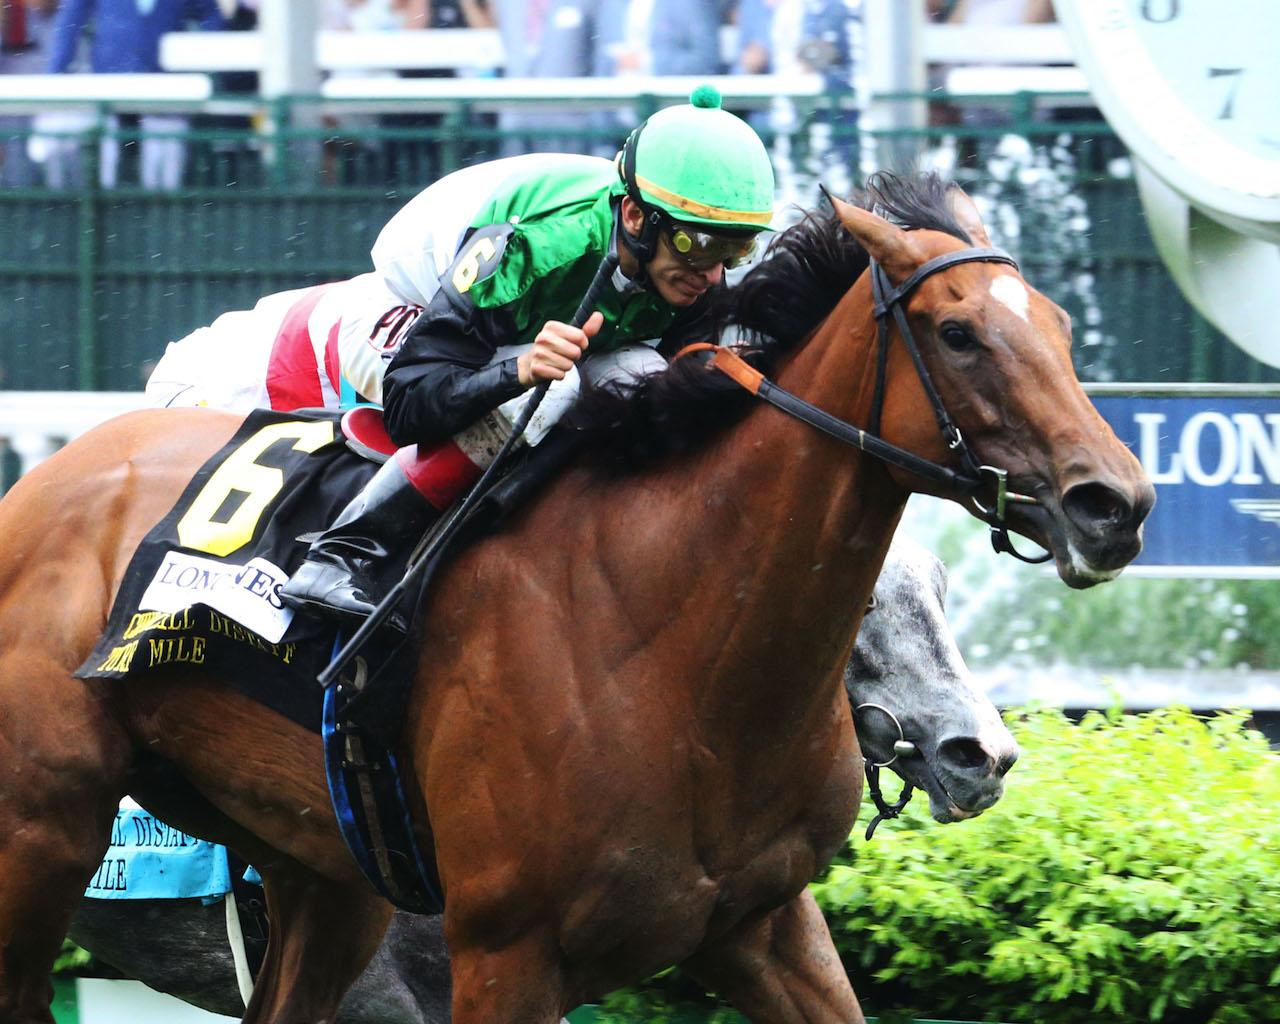 PROCTOR'S LEDGE - The Longines Churchill Distaff Turf Mile G2 - 33rd Running - 05-05-18 - R07 - CD - Finish 02